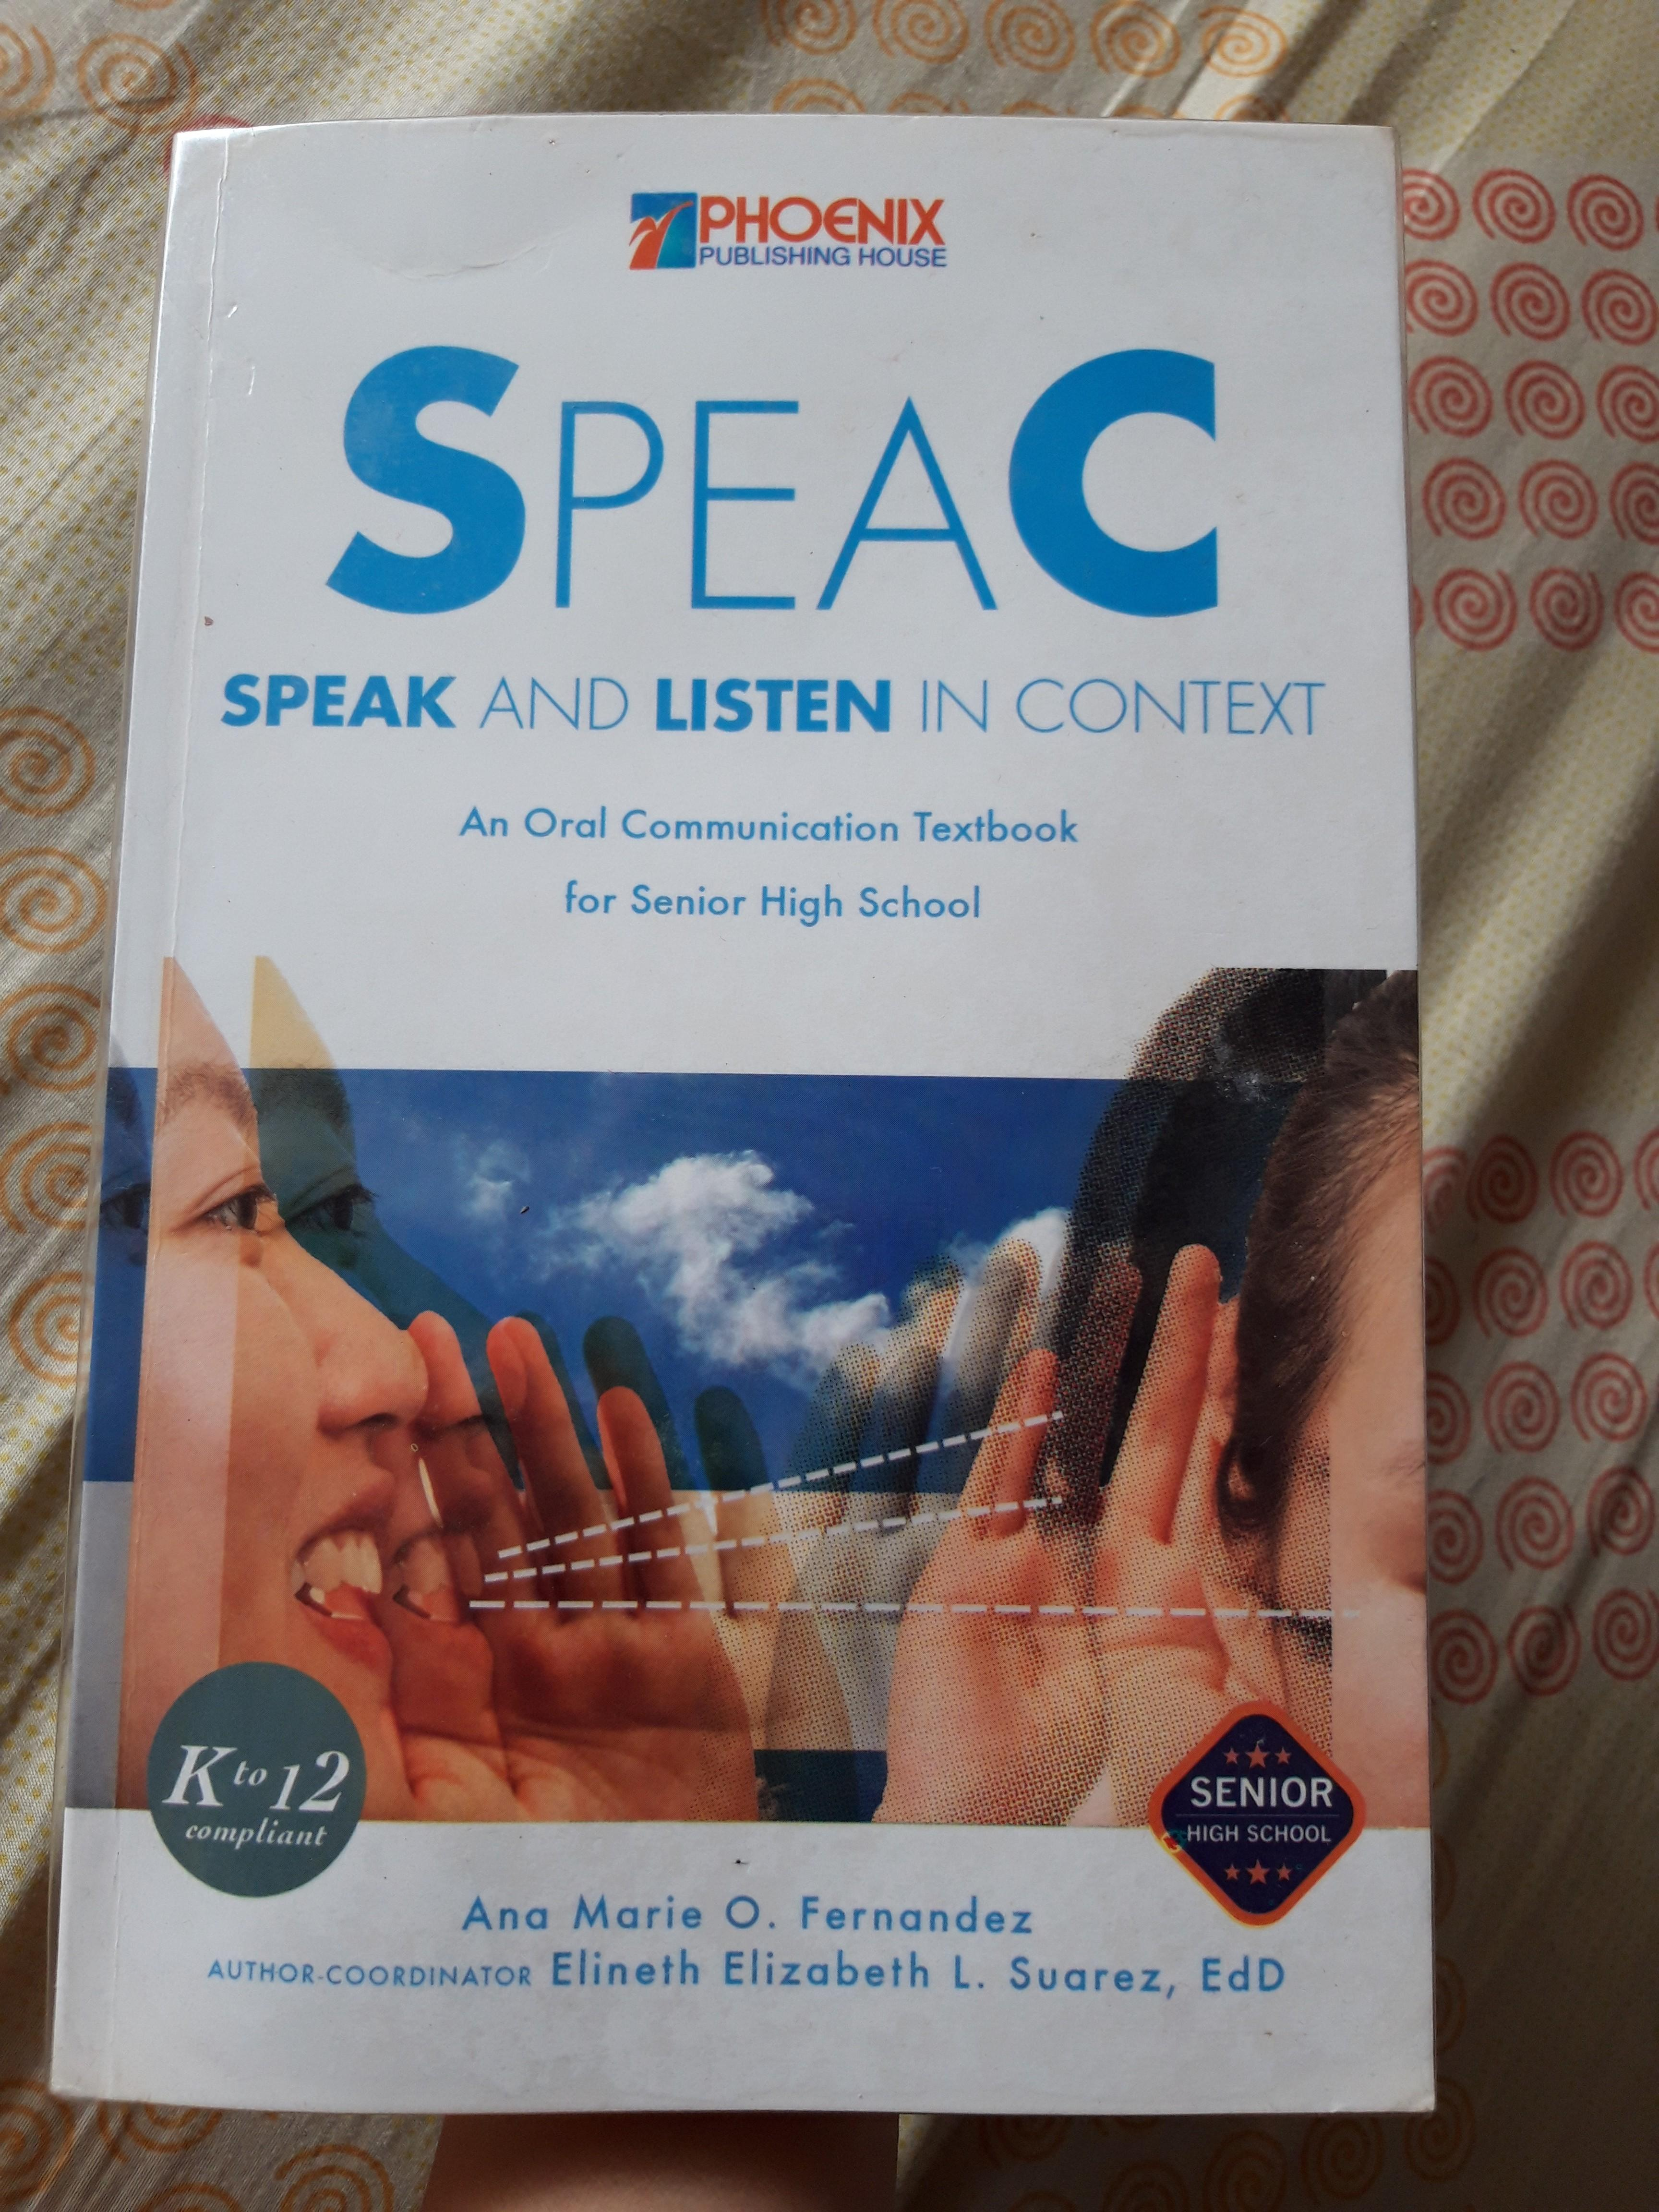 PHOENIX PUBLISHING HOUSE: SPEAC: Speak and Listen in Context (Oral Communication Book)